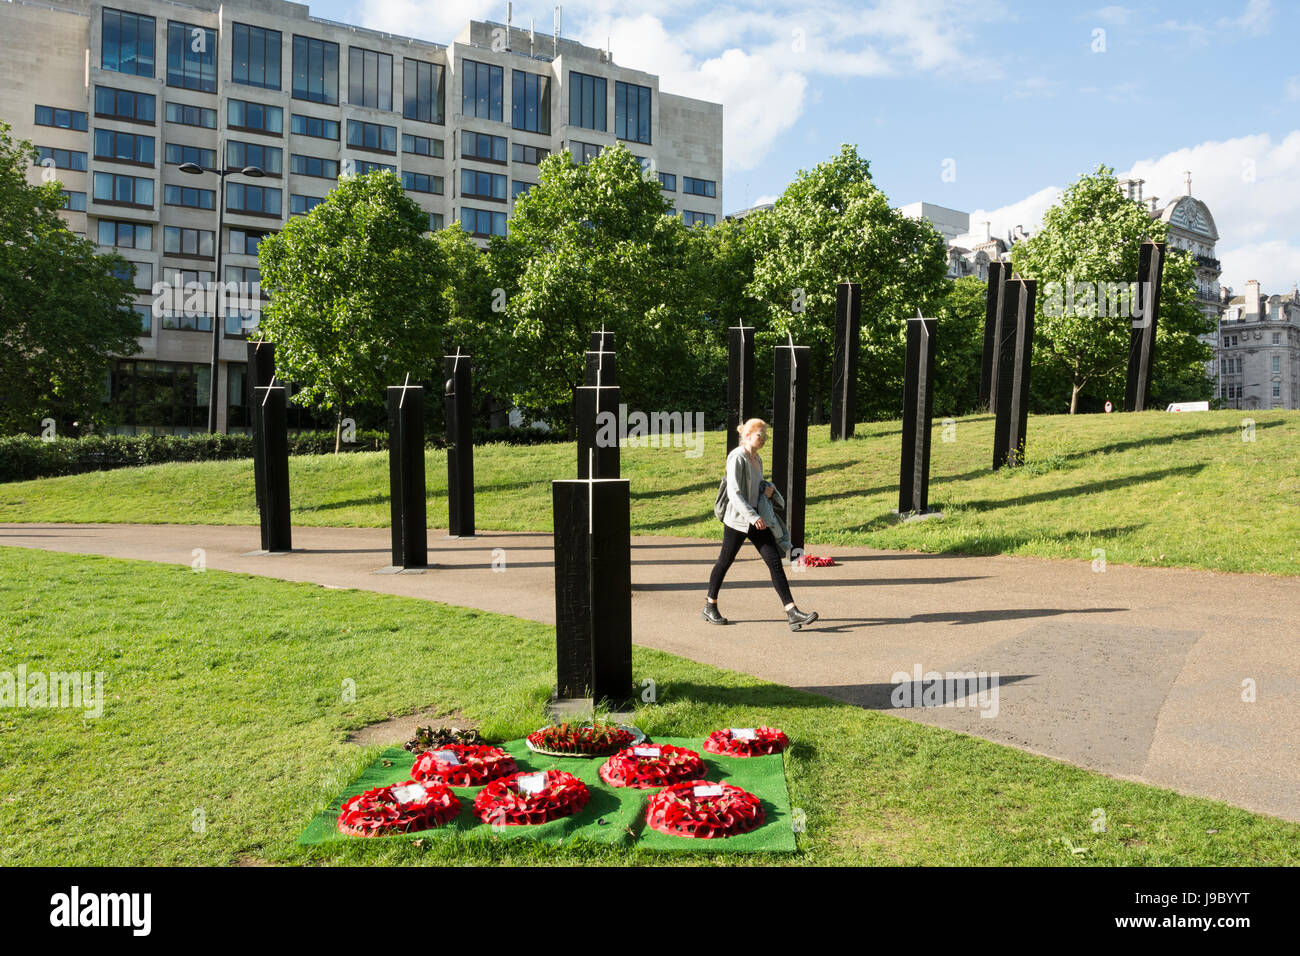 The Southern Stand – New Zealand's War Memorial, Hyde Park Corner, London, UK - Stock Image